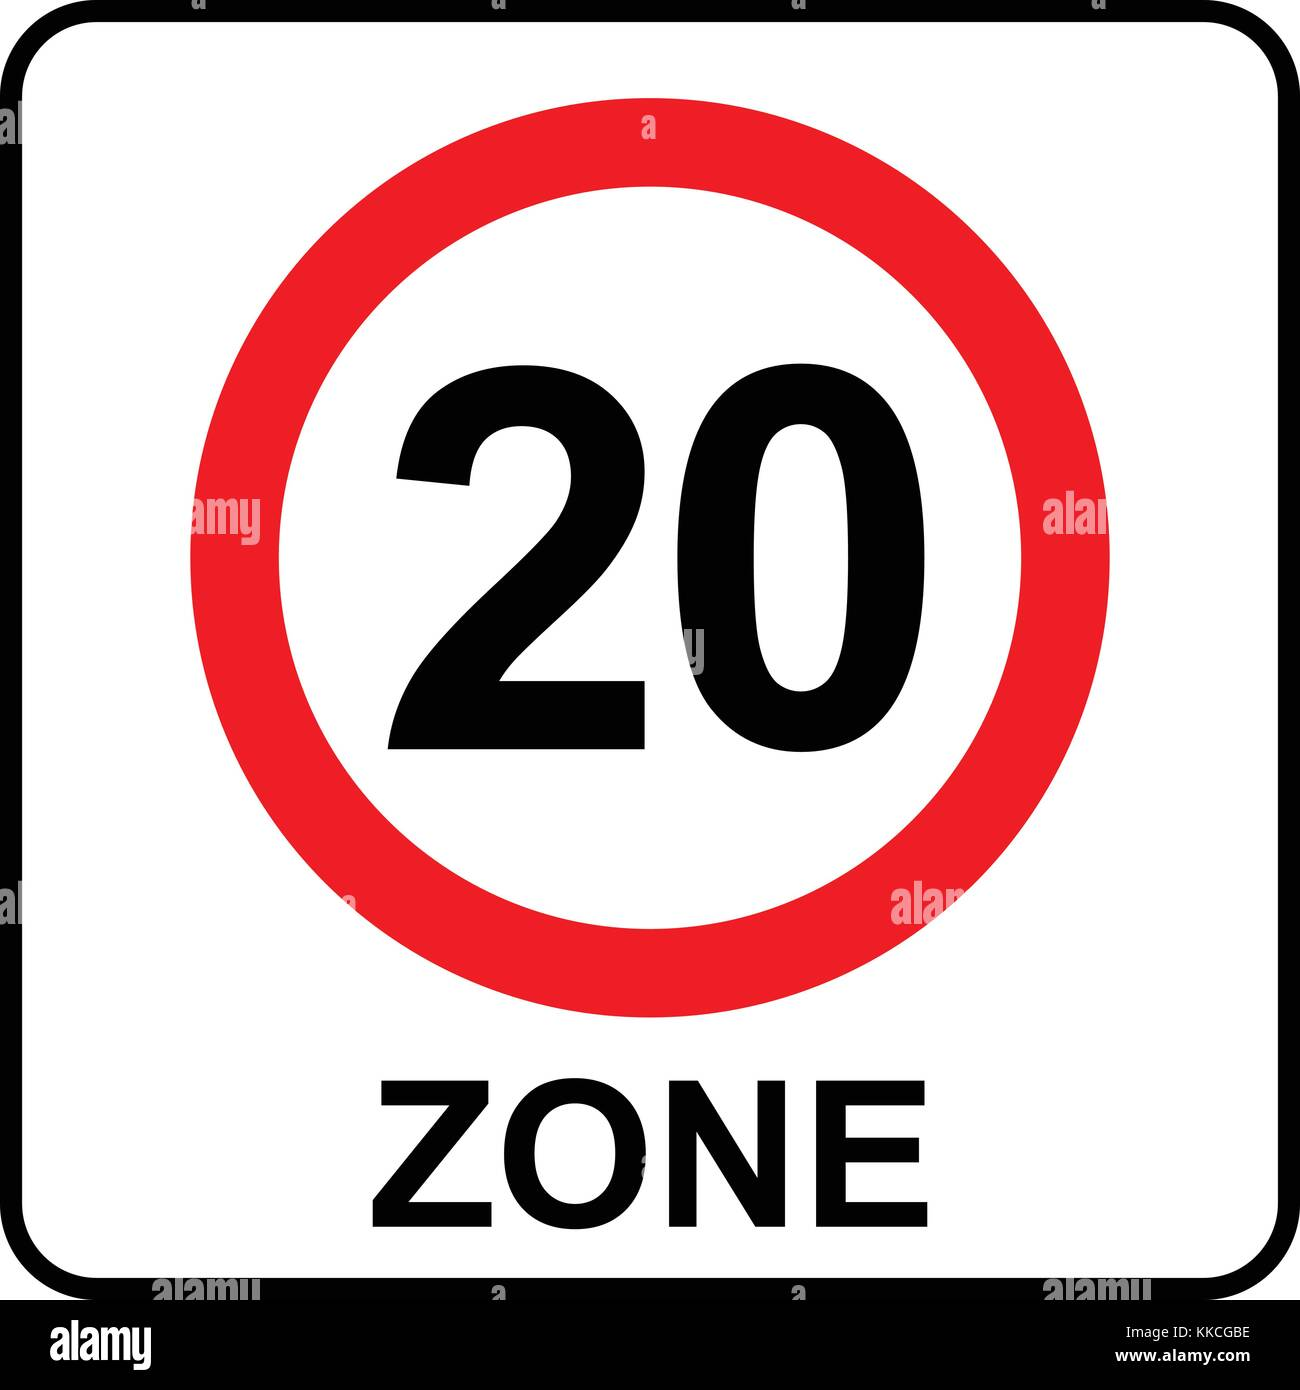 Speed limit zone 20 sign, vector illustration. - Stock Vector